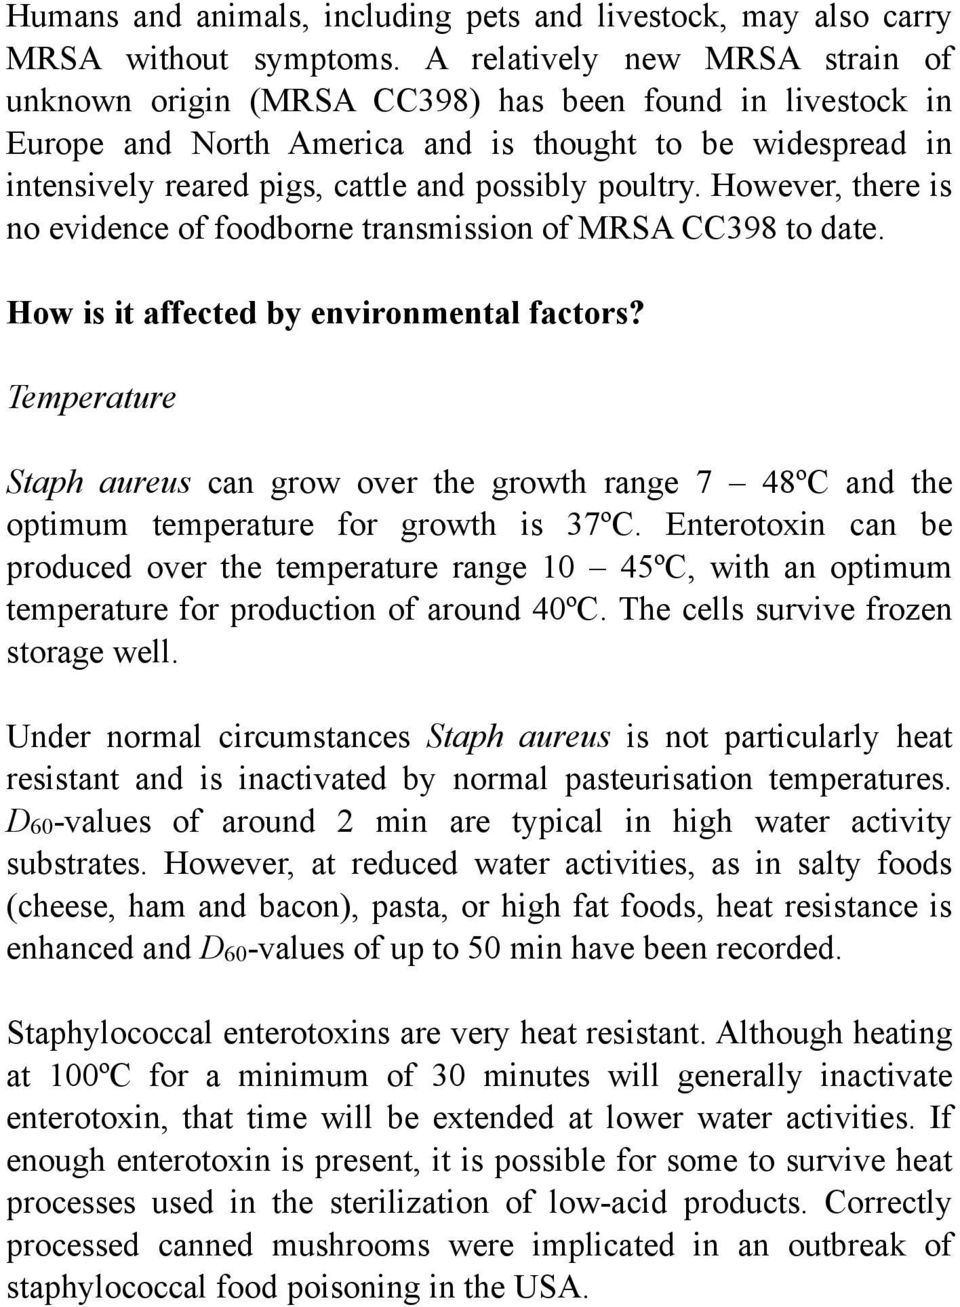 poultry. However, there is no evidence of foodborne transmission of MRSA CC398 to date. How is it affected by environmental factors?